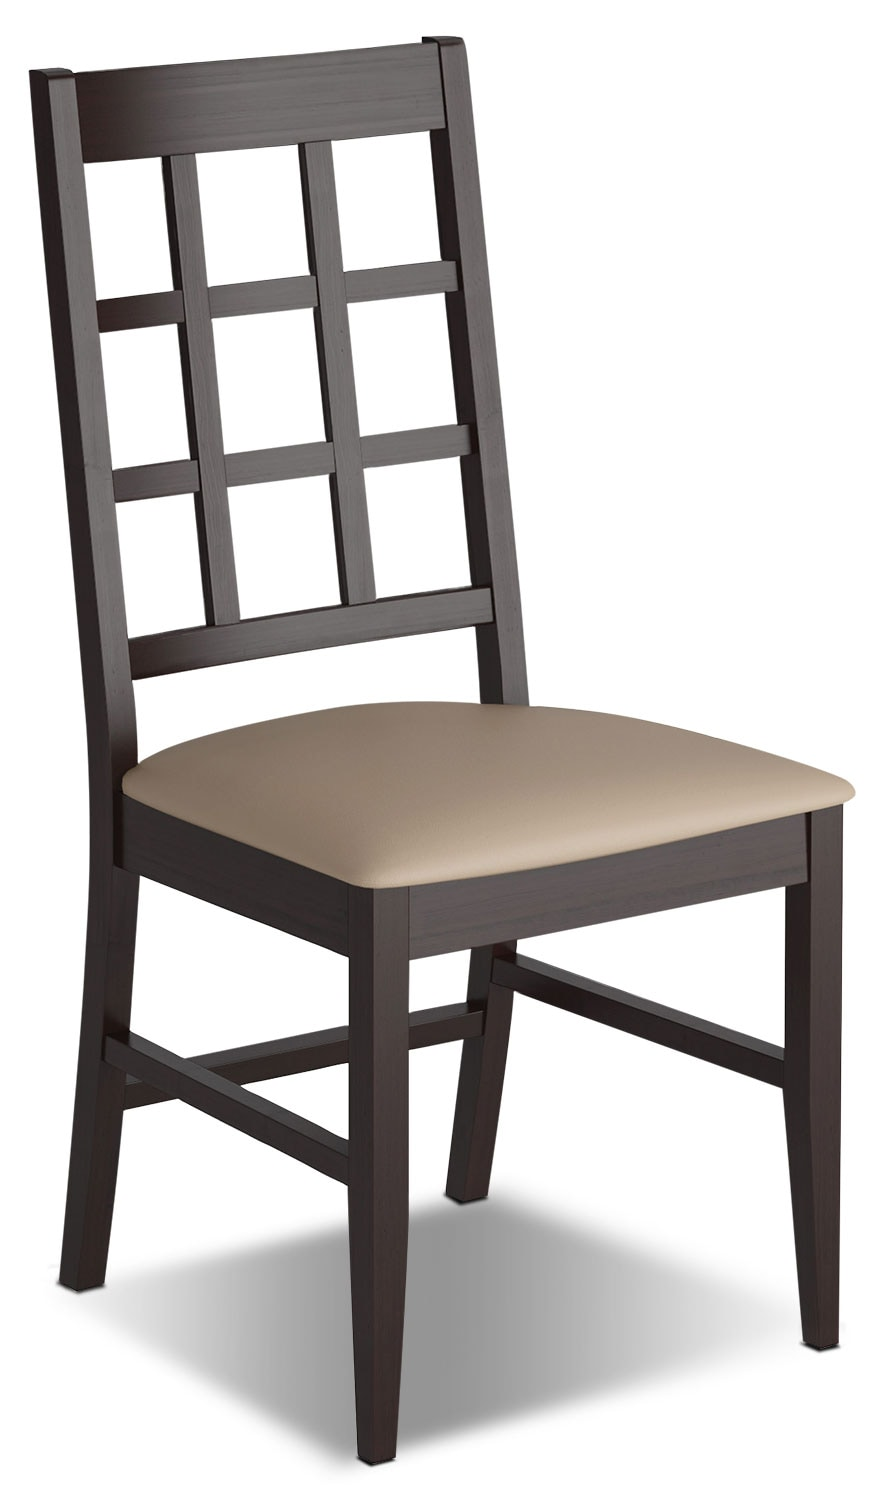 Dining Room Furniture - Atwood Dining Chair with Faux Leather Seat - Grey